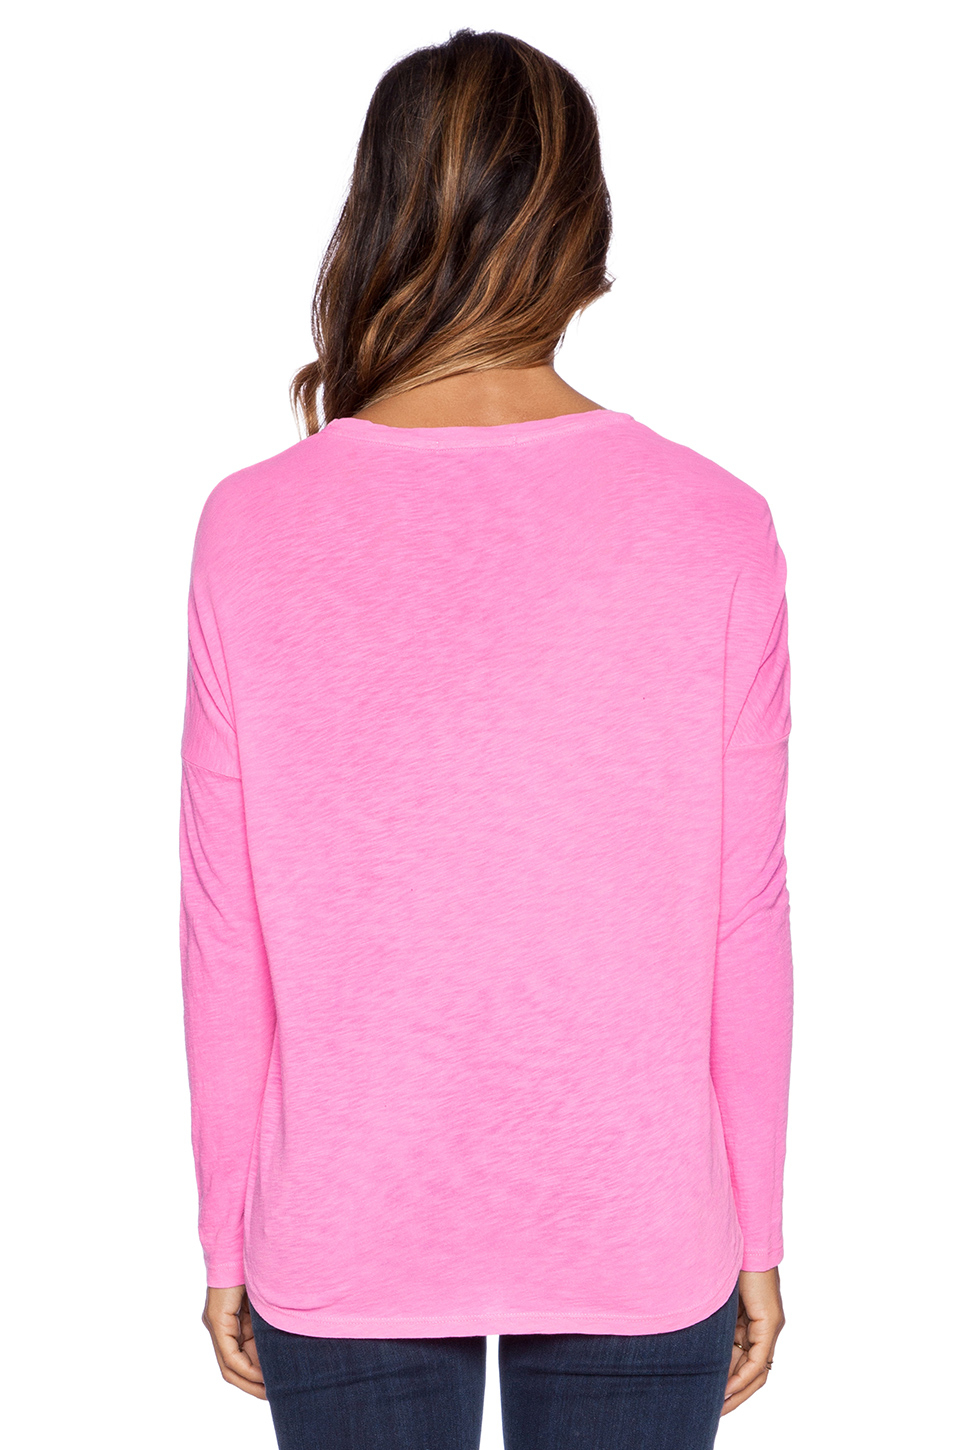 Long Sleeve Shirts For Women & Raglan Tees: Play Ball! Even if you're not heading out to a ball game, there are still plenty of reasons to pull on a women's raglan tee. These women's long sleeve shirts are perfect for a chilly evening chilling with friends outside, going for a hike, or just lounging around on a lazy Sunday (or even Wednesday).